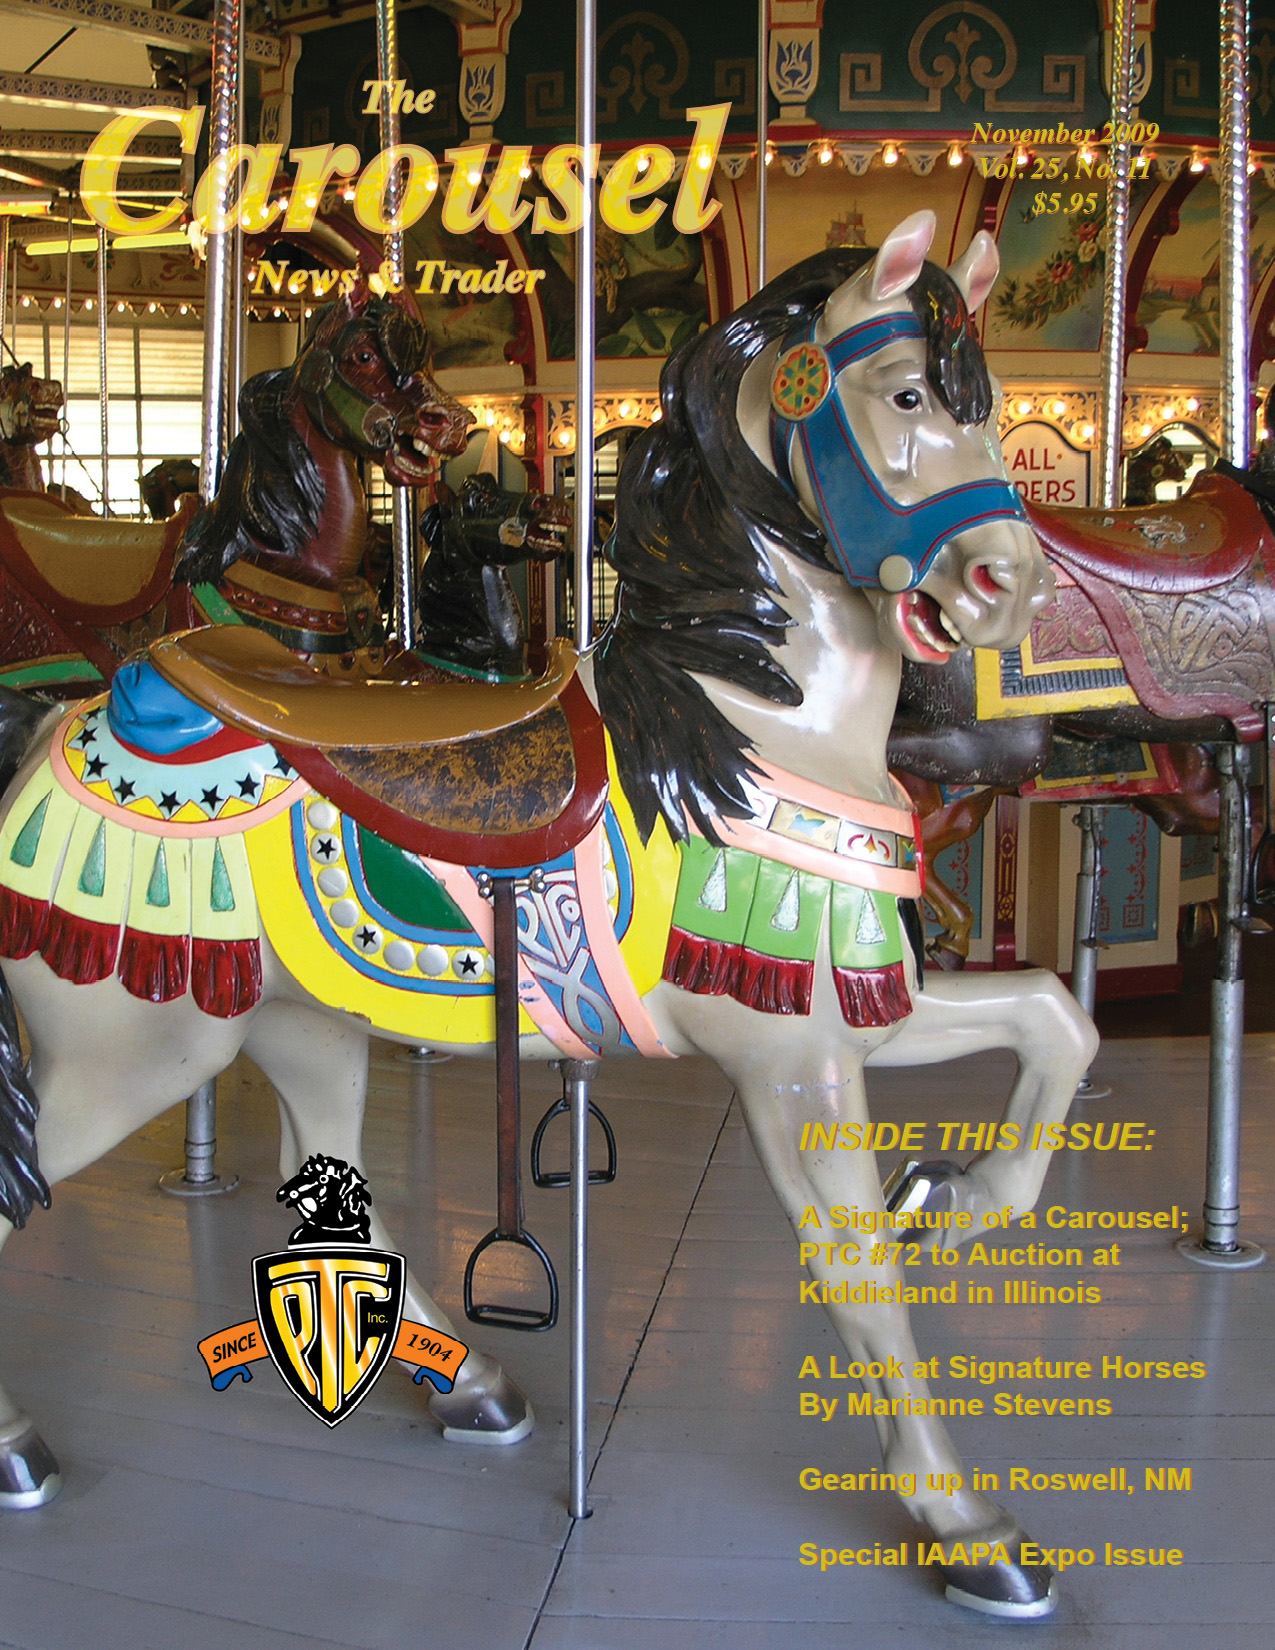 Issue No. 11, Vol. 25 – November 2009